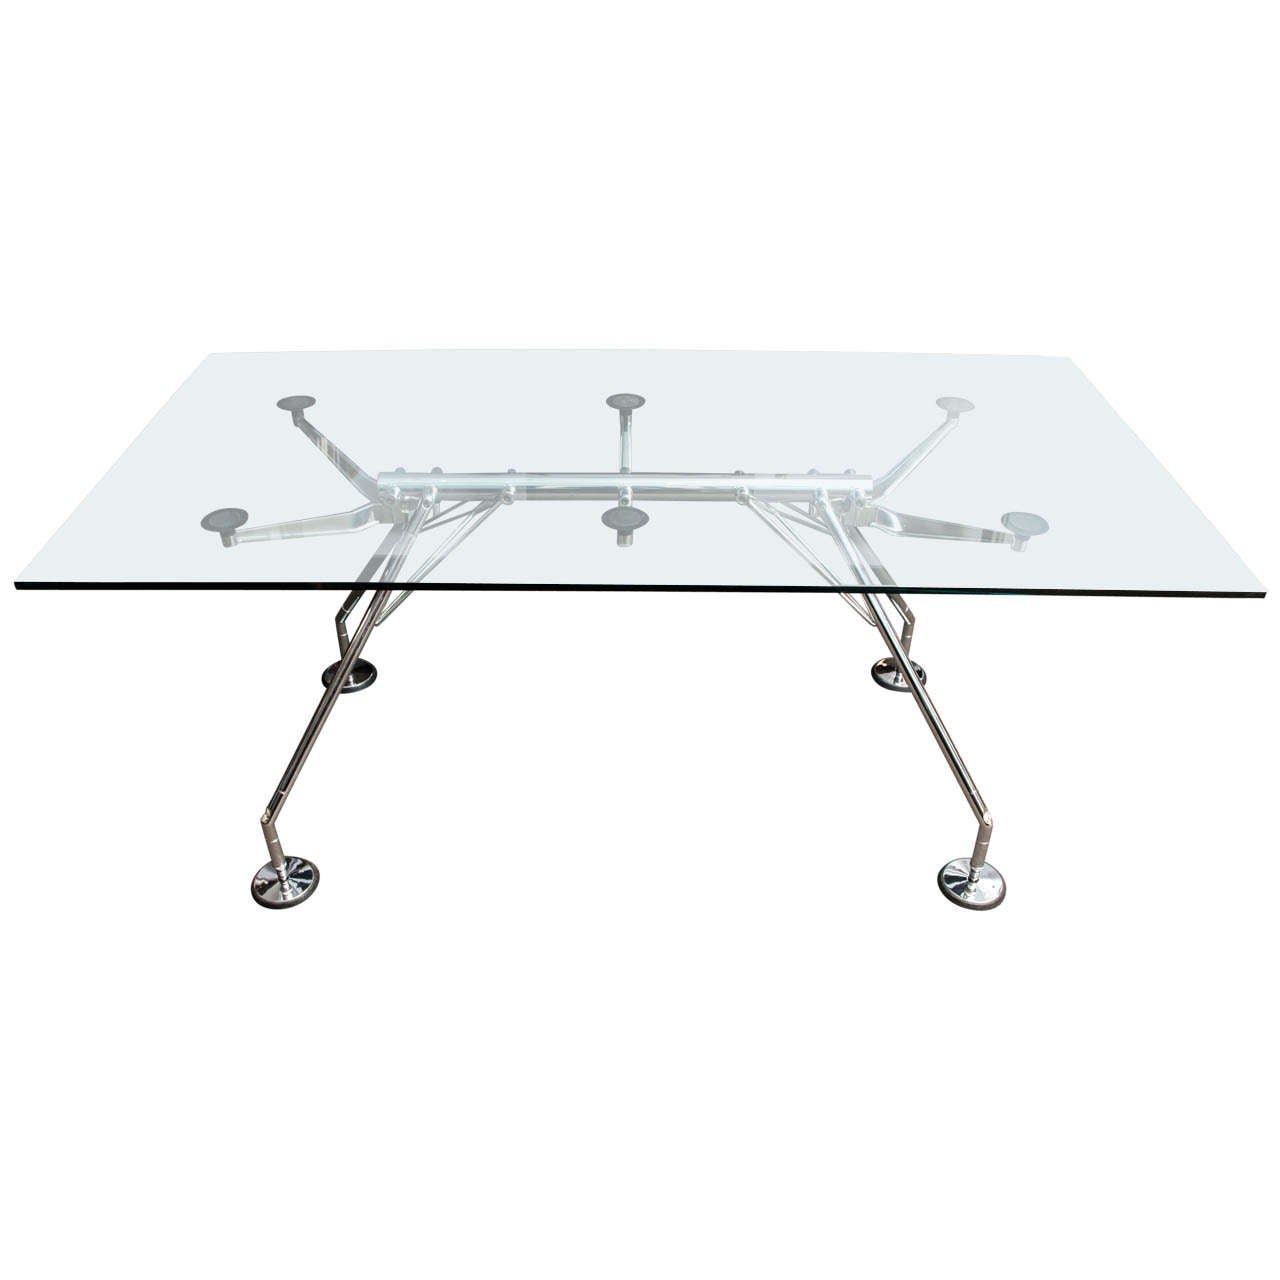 nomos table by norman foster for tecno at 1stdibs